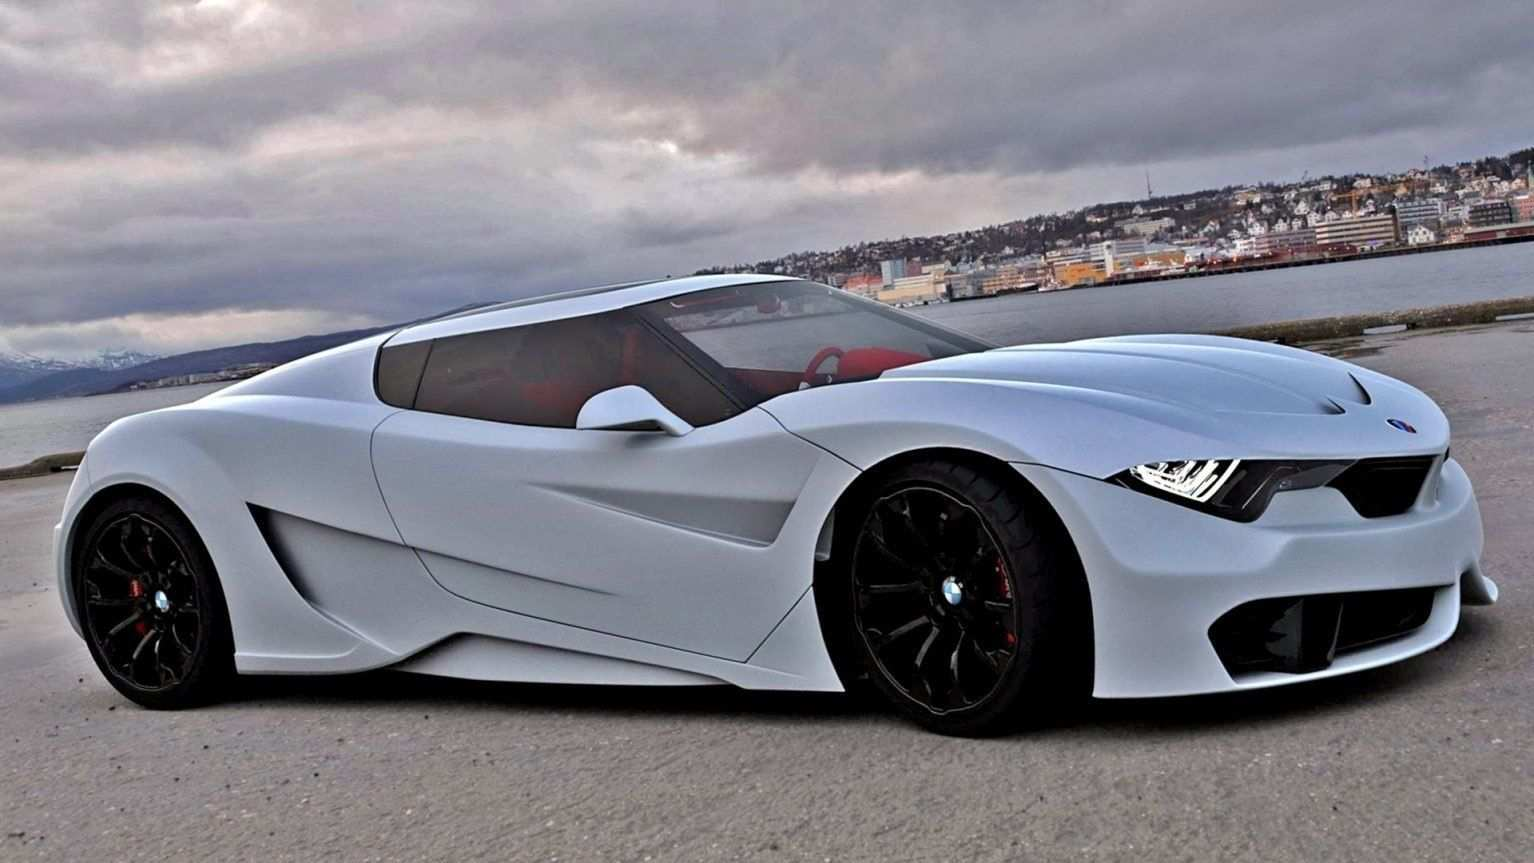 25 Concept of 2020 Bmw M9 Release Date for 2020 Bmw M9